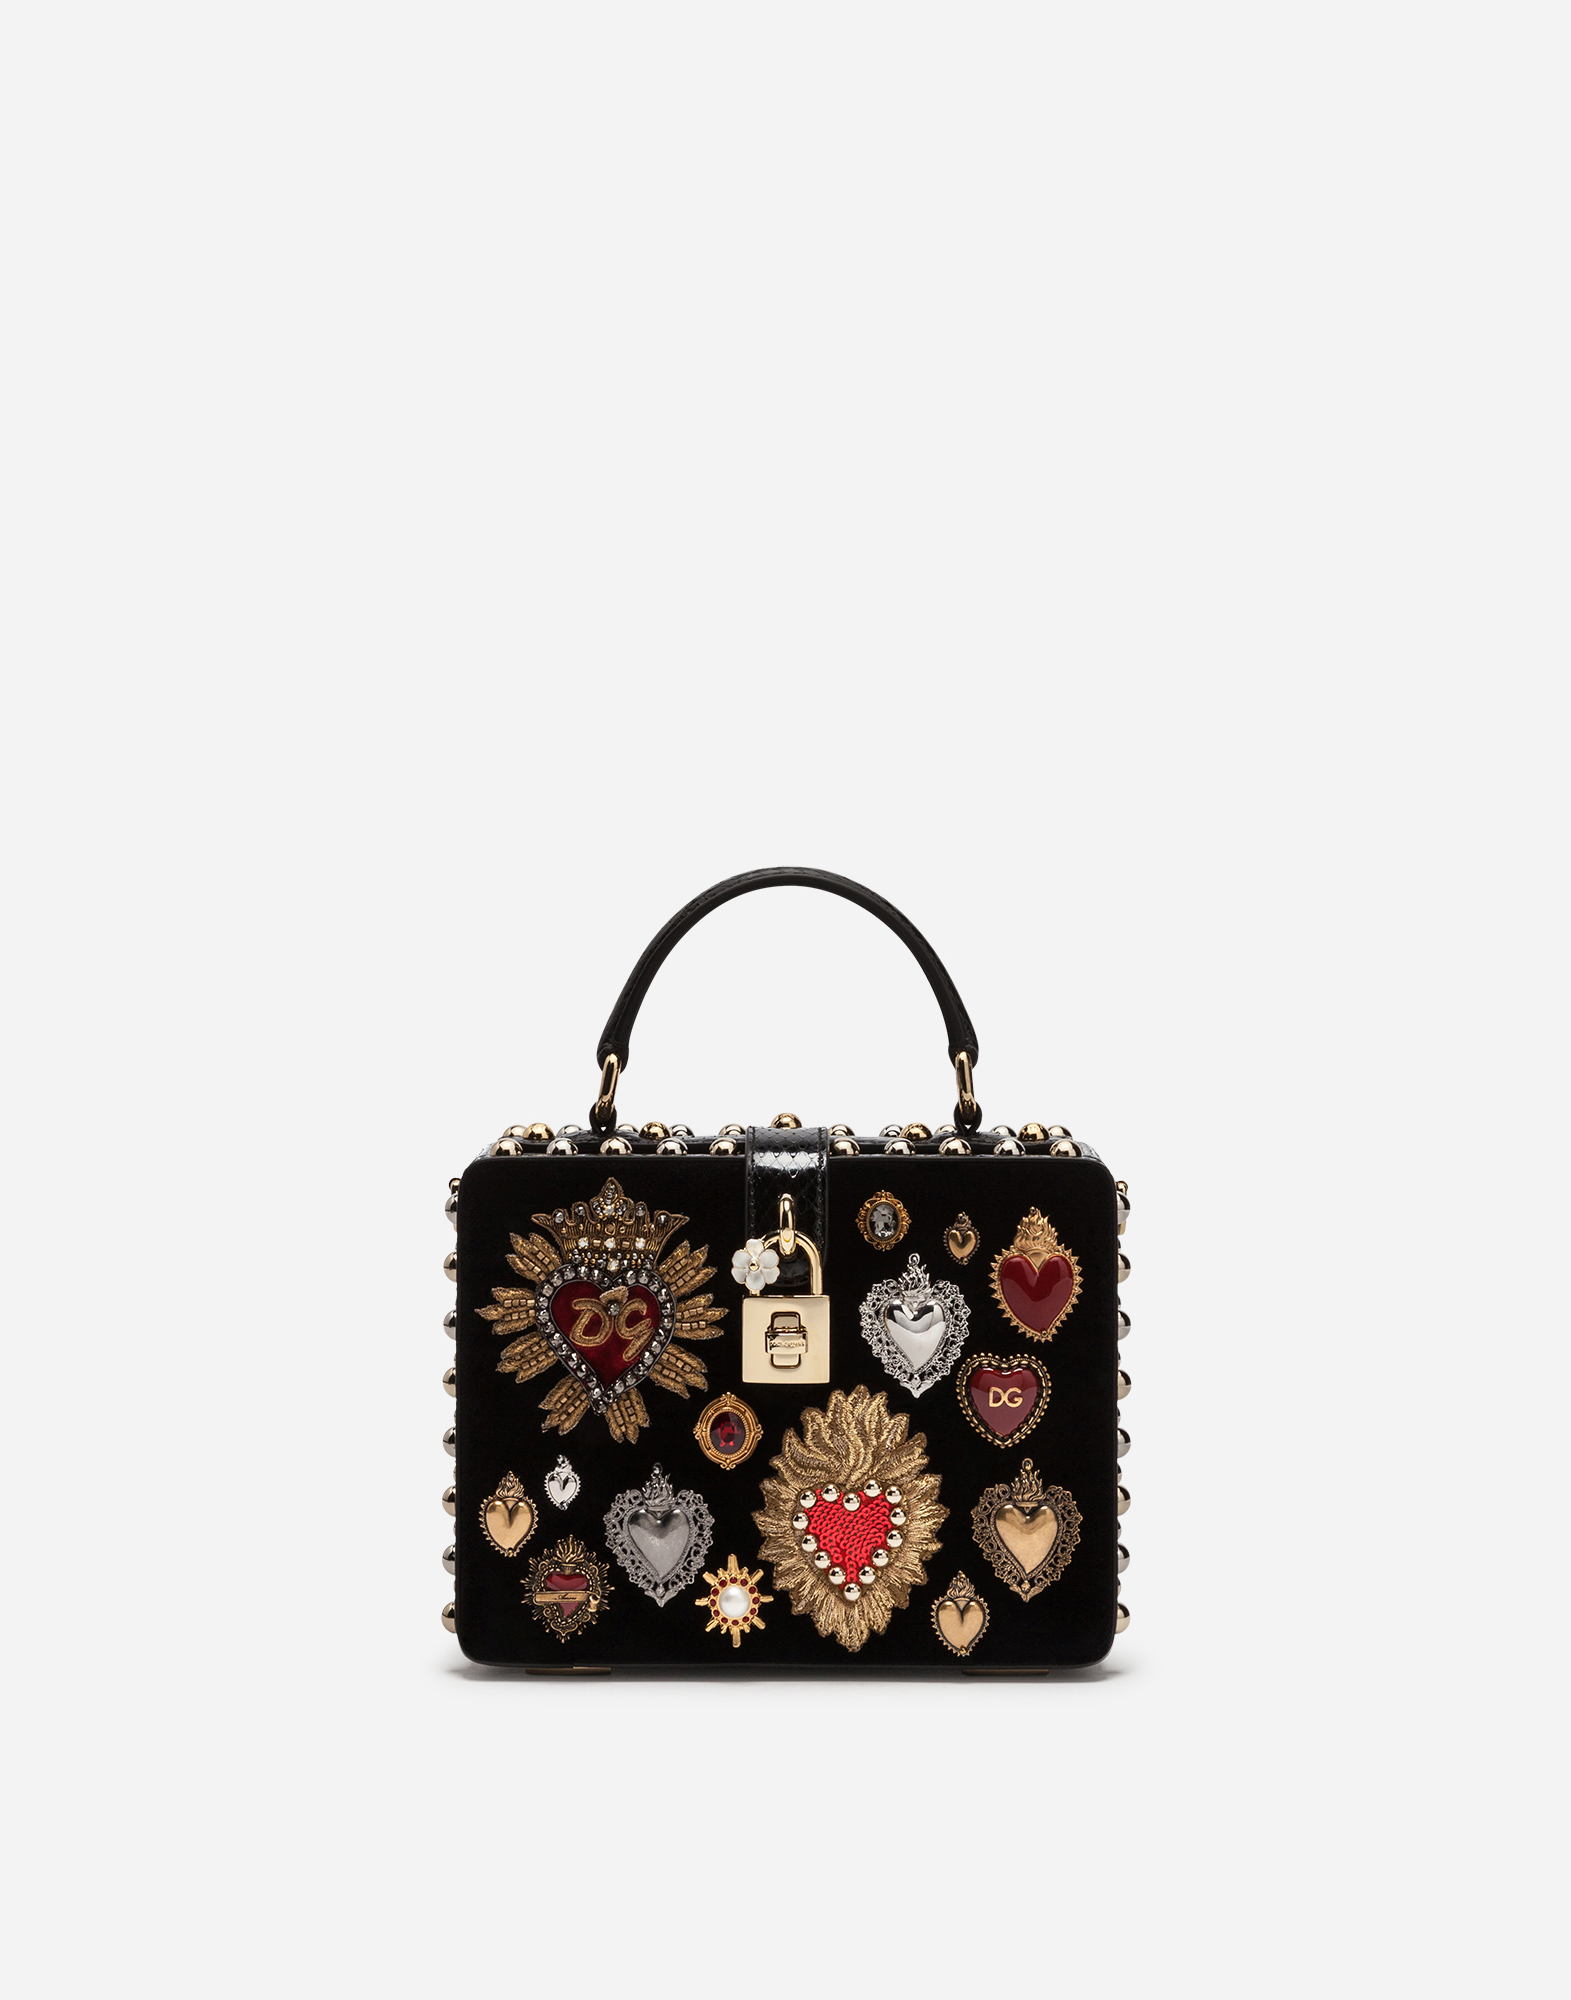 DOLCE BOX BAG IN VELVET WITH EMBROIDERY